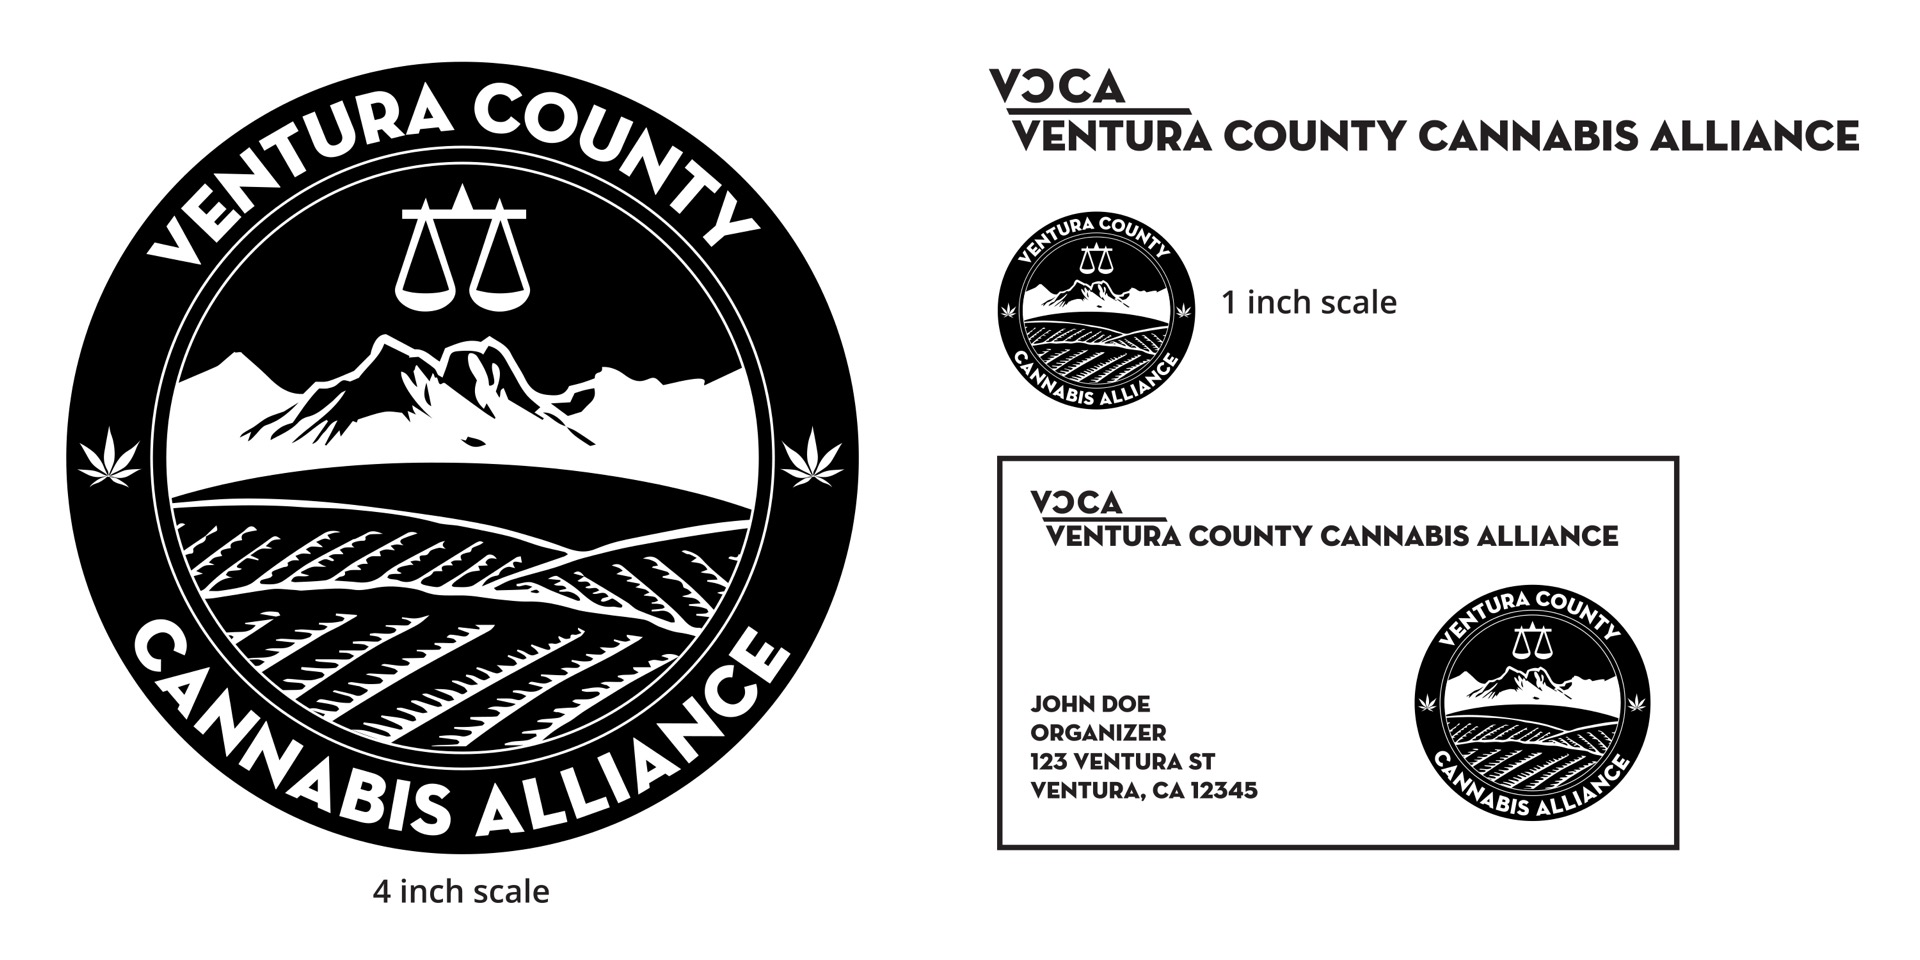 Ventura County Cannabis Alliance